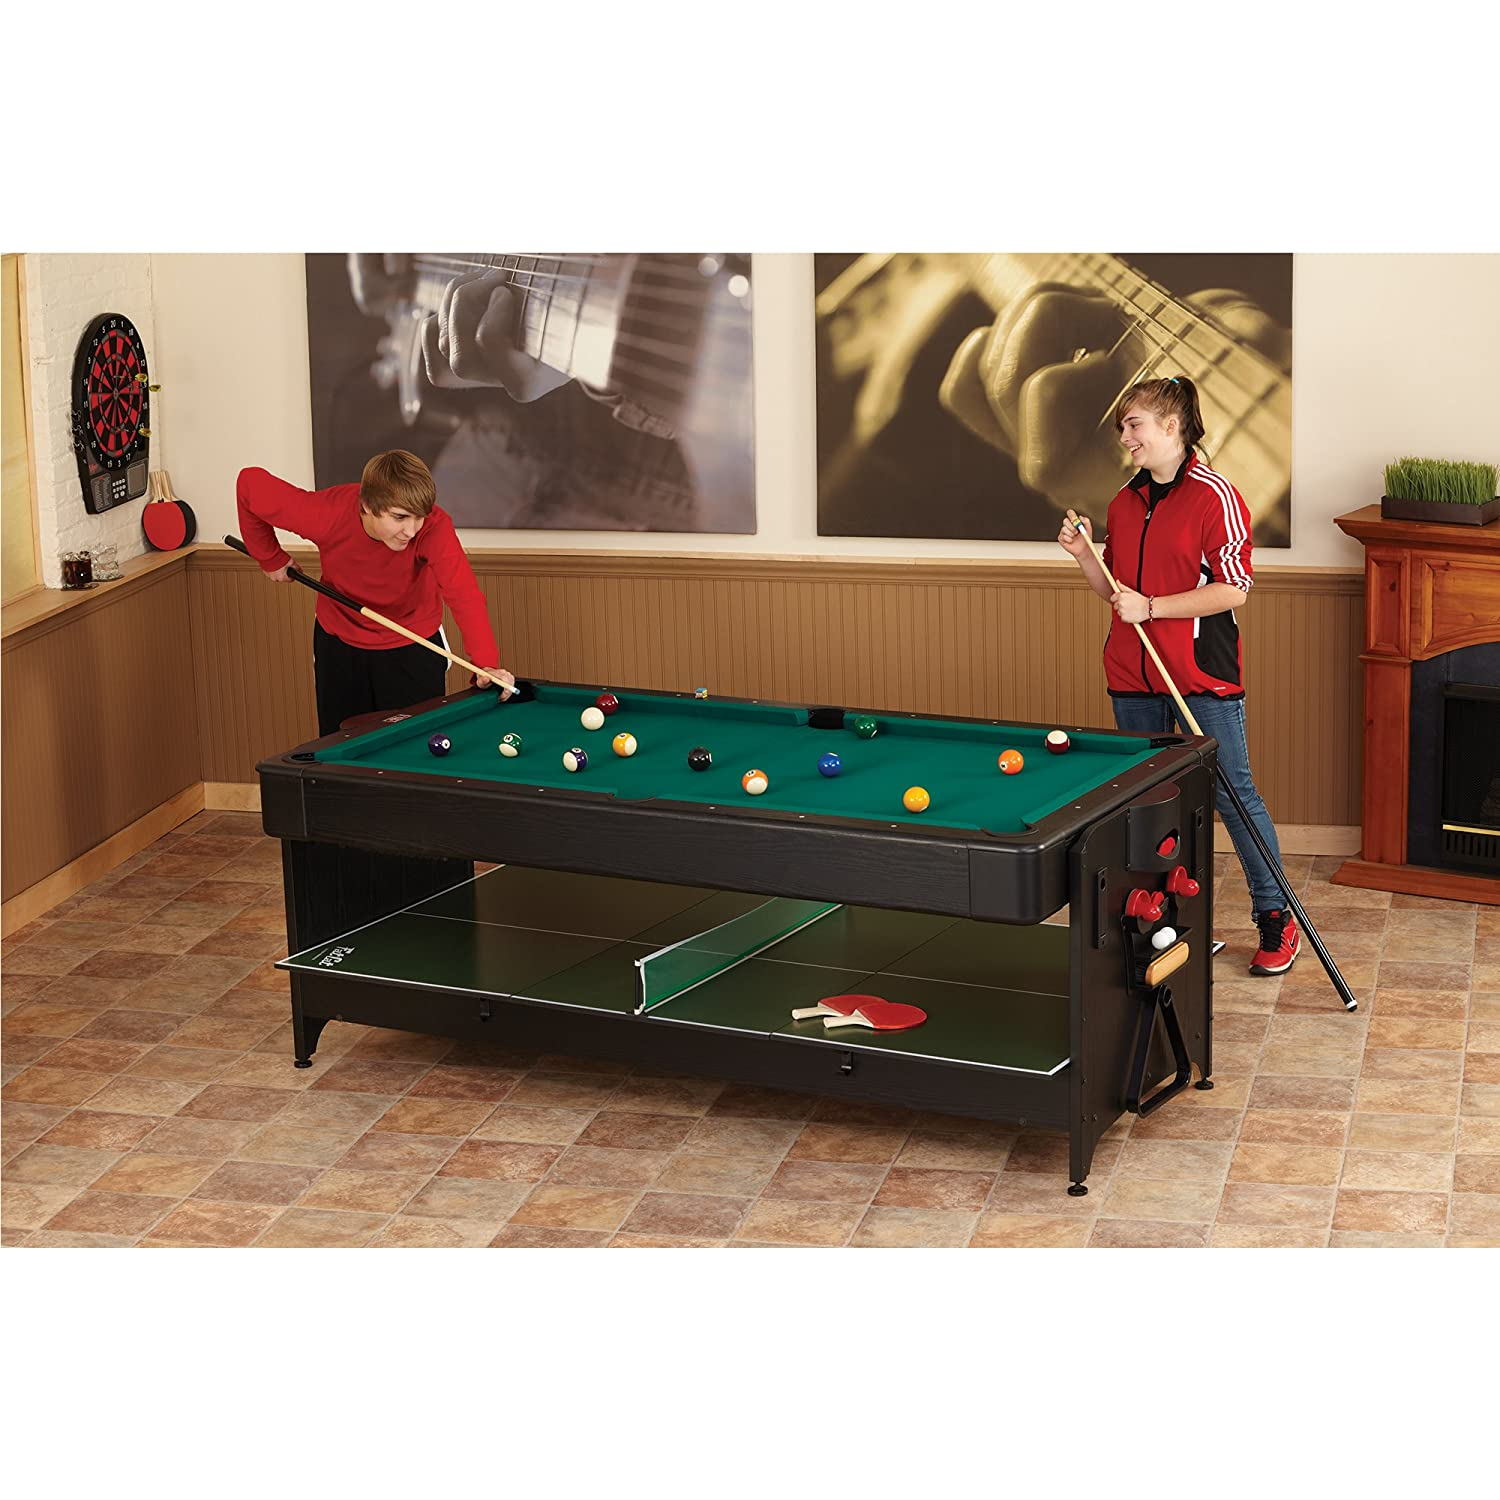 Great Amazon.com : Fat Cat Original 3 In 1, 7 Foot Pockey Game Table (Air Hockey,  Billiards And Table Tennis) : Tabletop Billiards Games : Sports U0026 Outdoors